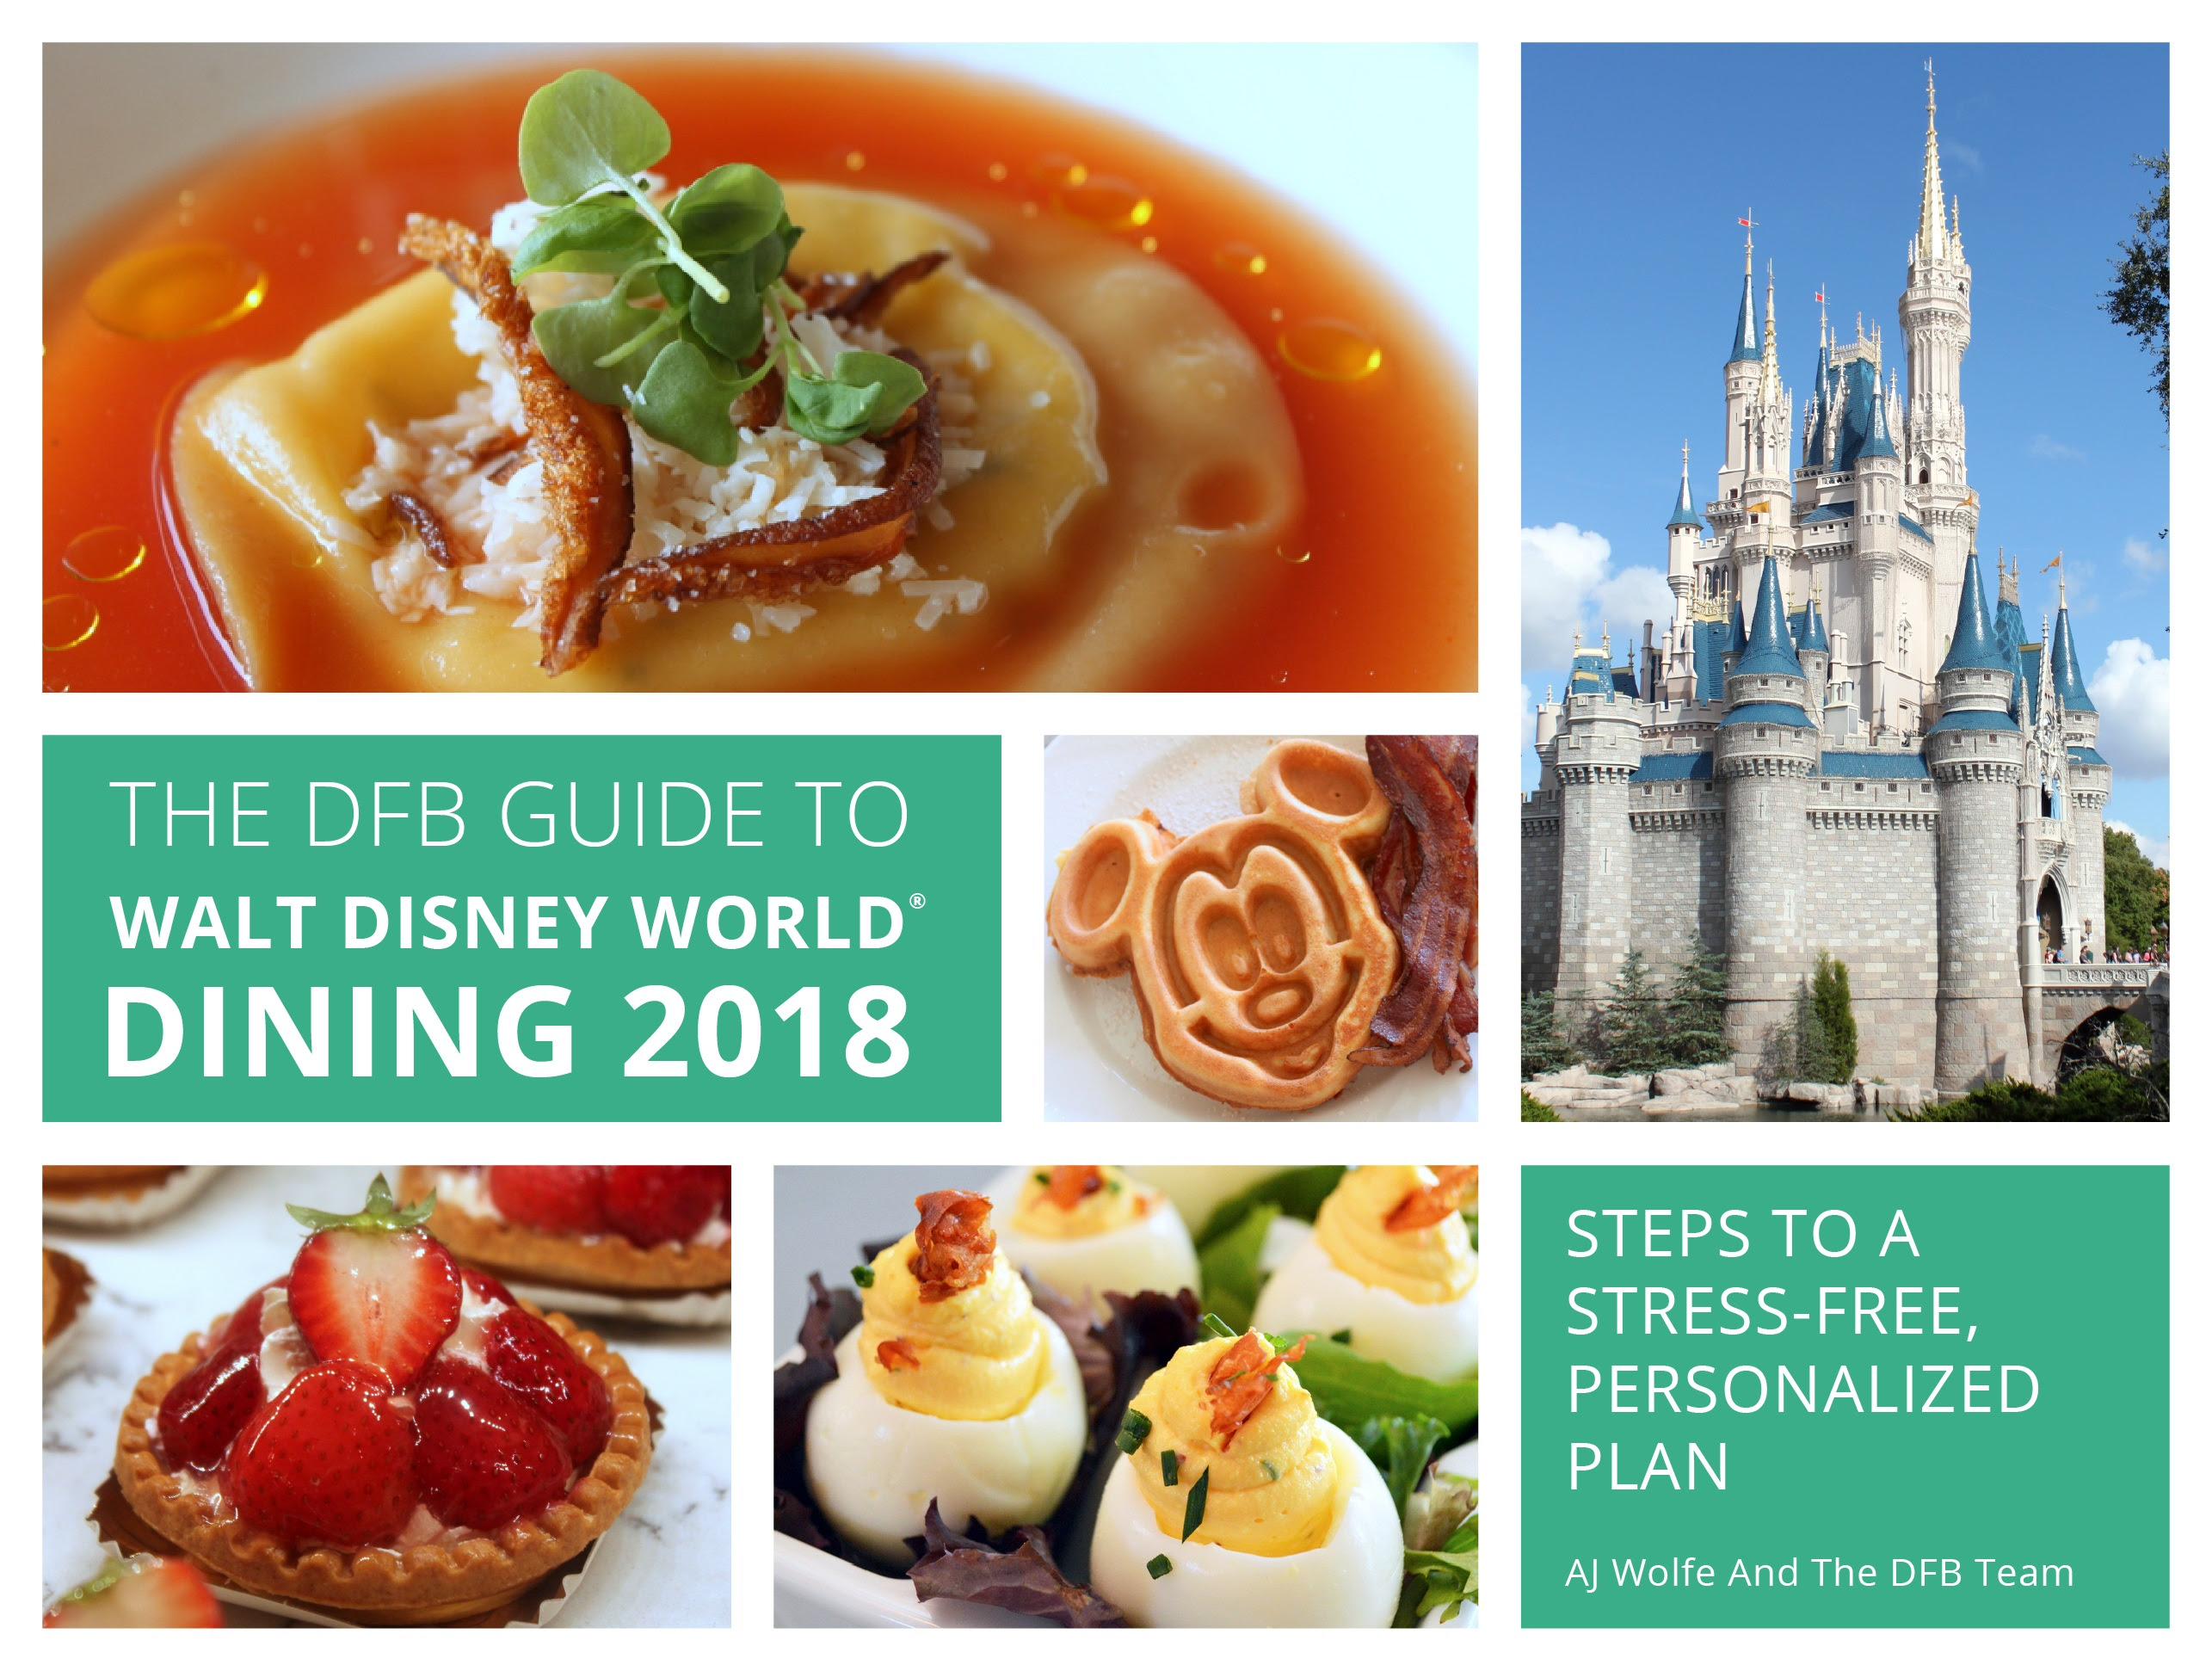 2017 DFB Guide to WDW Dining Cover March 6